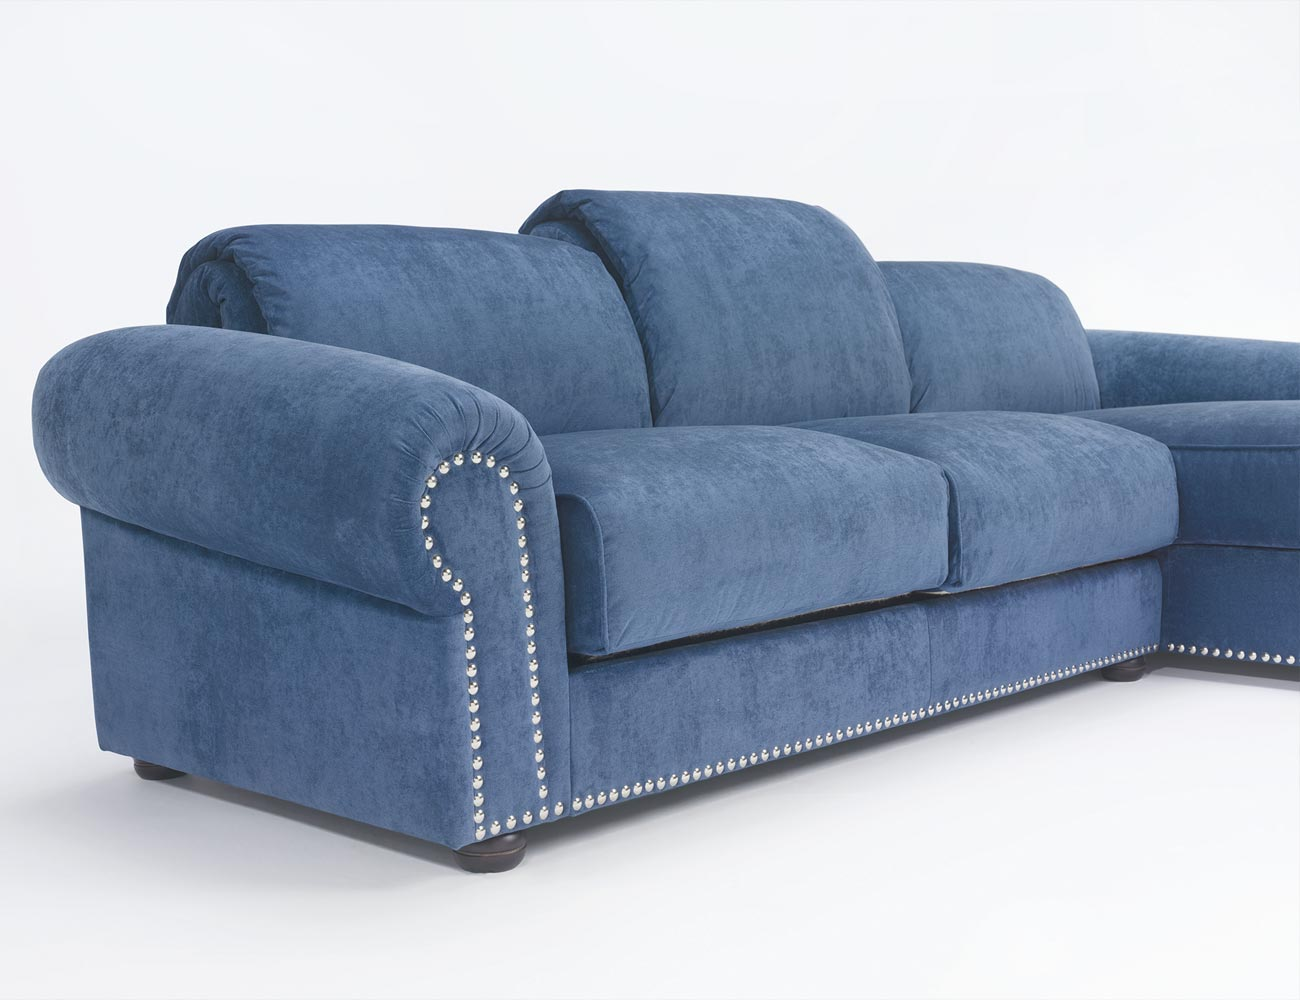 Sofa chaiselongue gran lujo decorativo azul 146